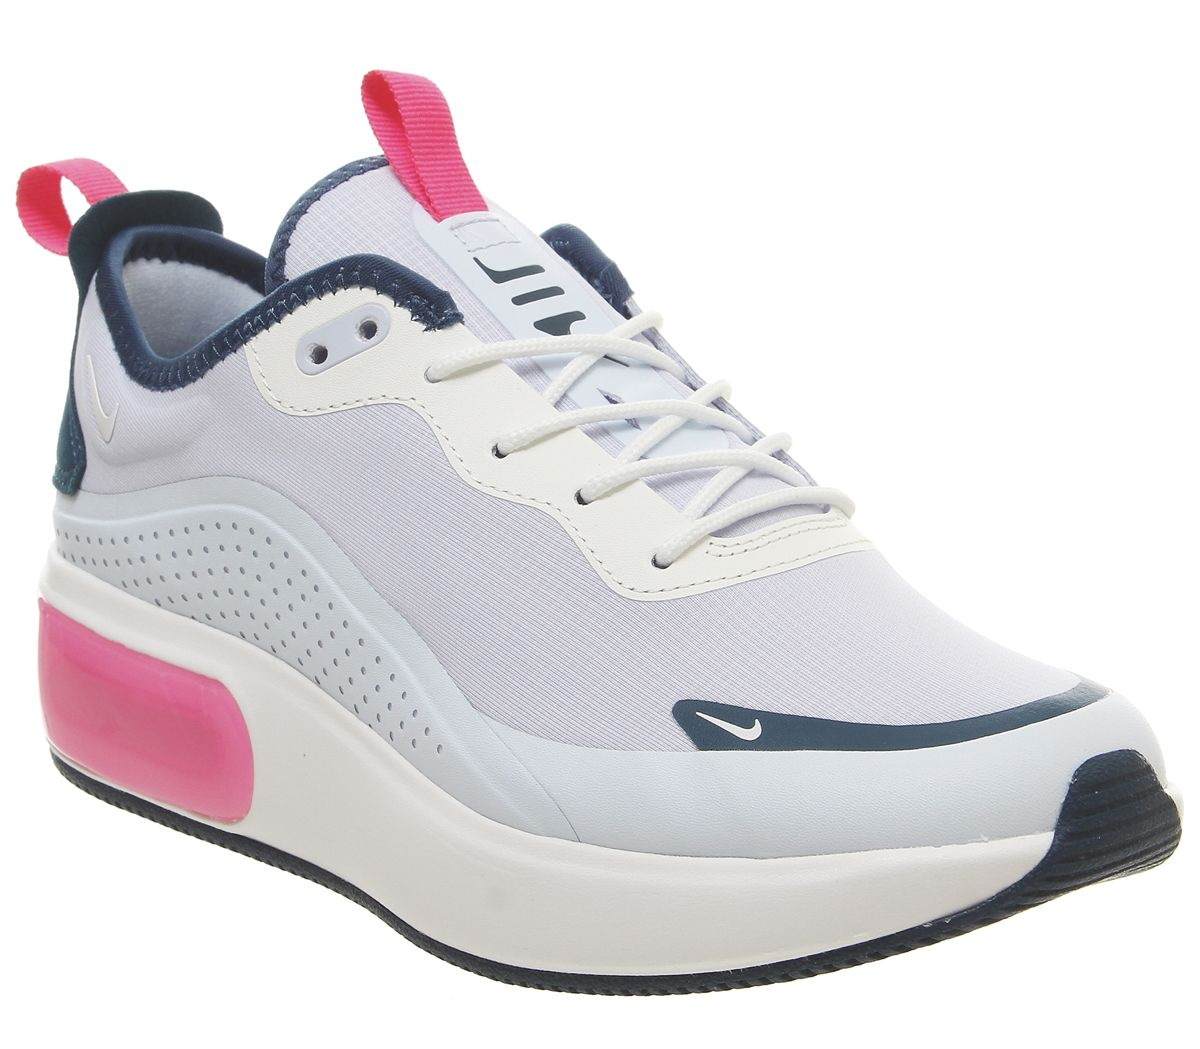 28c813035b Nike Air Max Dia Trainers Blue Force Hyper Pink Summit White - Hers ...